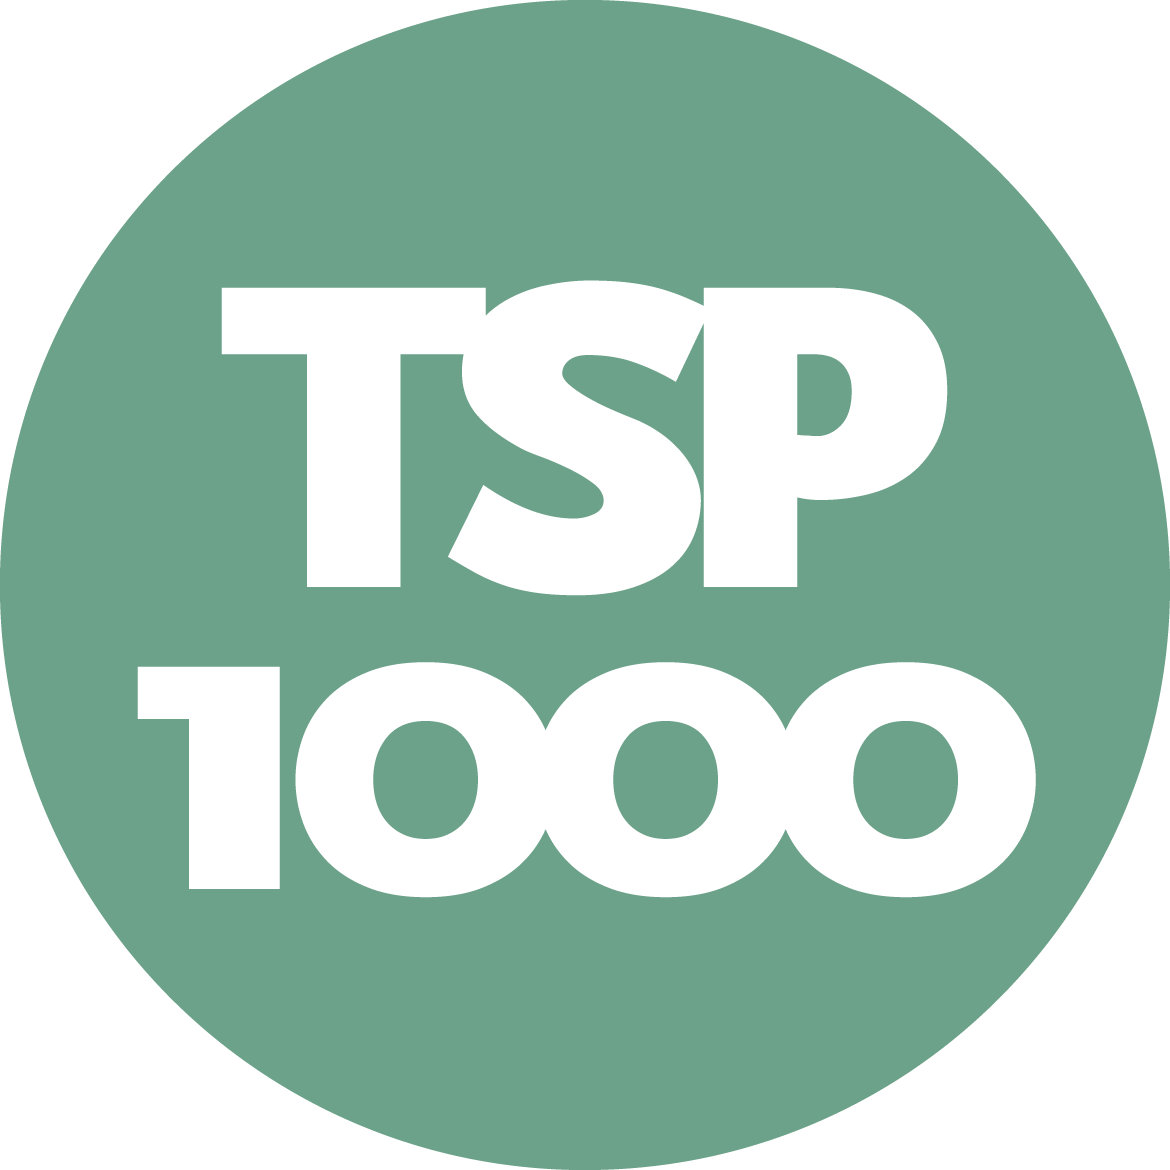 TSPDT's 1,000 Greatest Films's icon